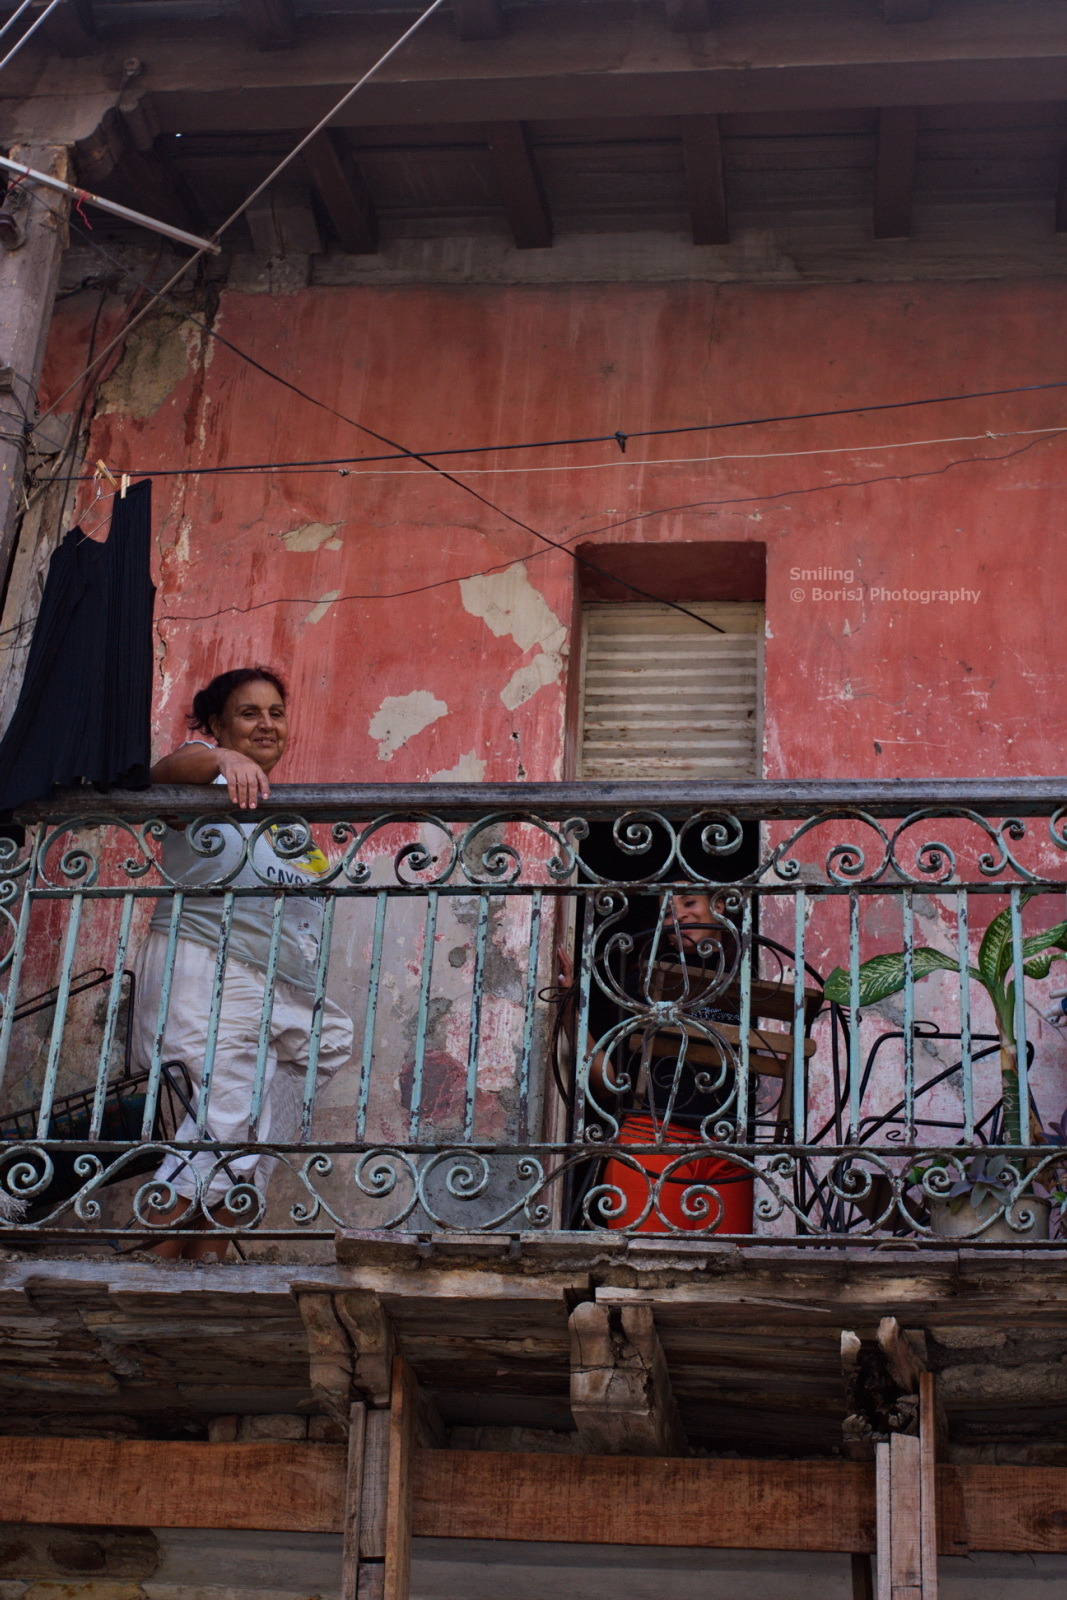 Smiling Cuban woman on her balcony. Canon EOS 40D 1/160s ISO 320 f/7 Santiago, Cuba Flickr - Twitter - Facebook - Google+ - Posterous - 500px Copyright © BorisJ Photography - Boris Jusseit - all rights reserved - please do not use this image on any media without my permission.